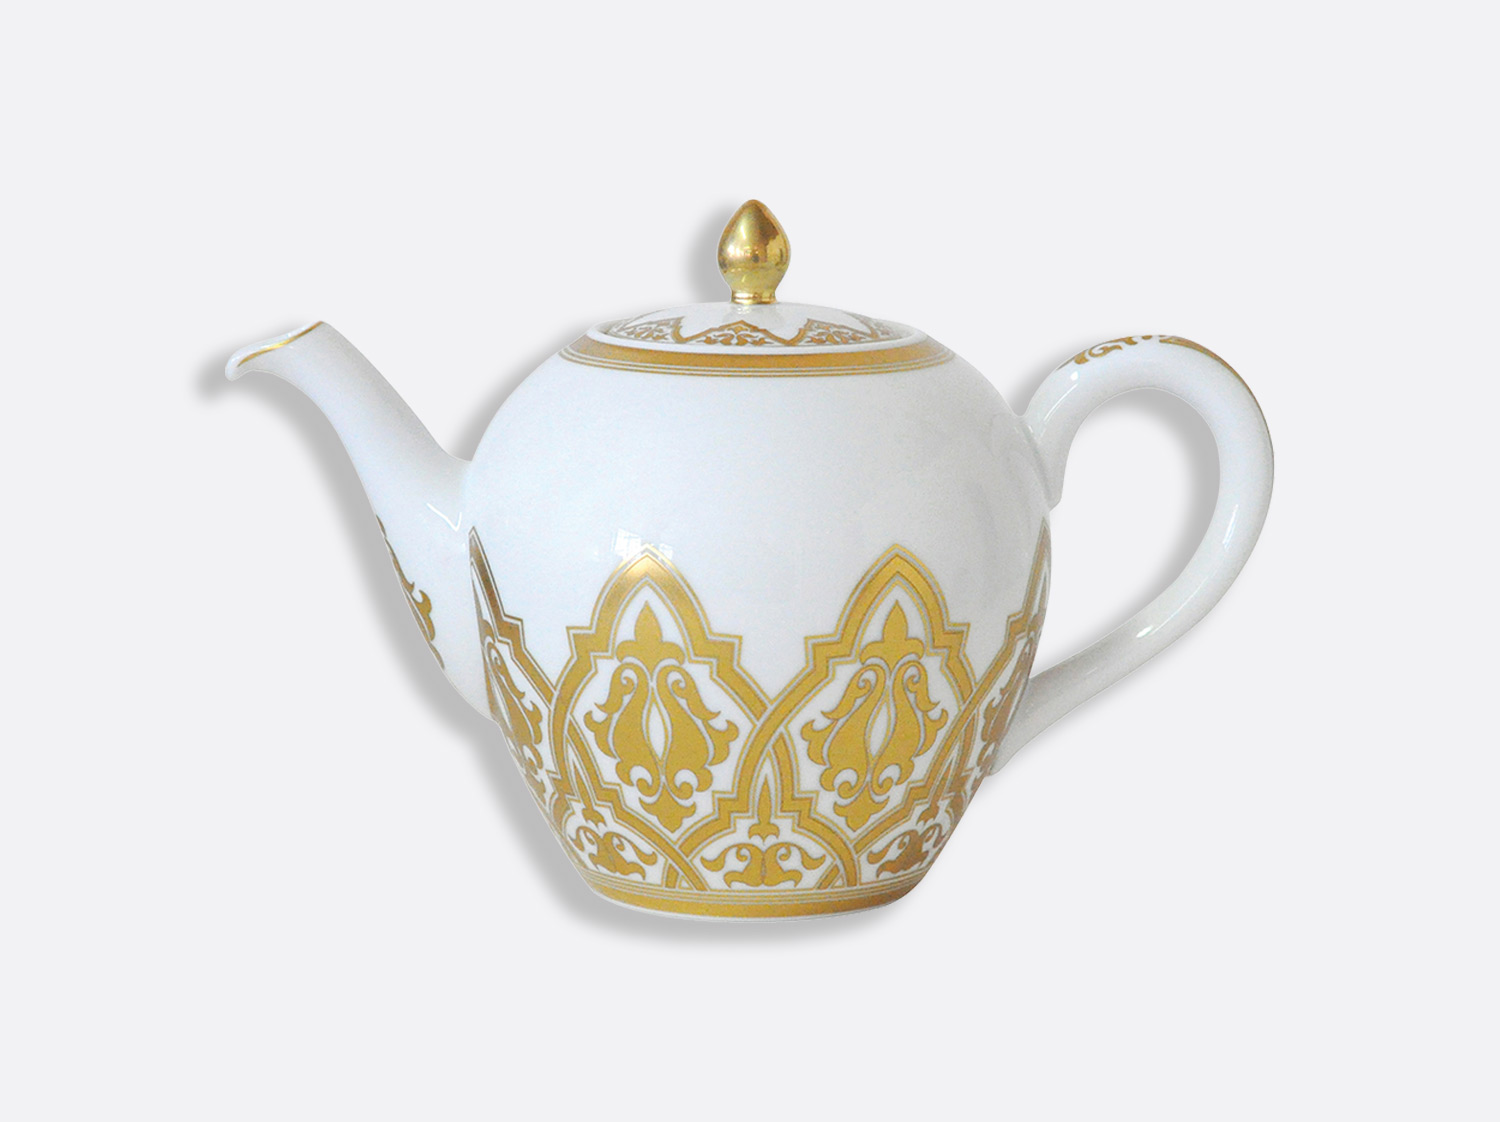 Théière 12 tasses 1,25 L en porcelaine de la collection Venise Bernardaud